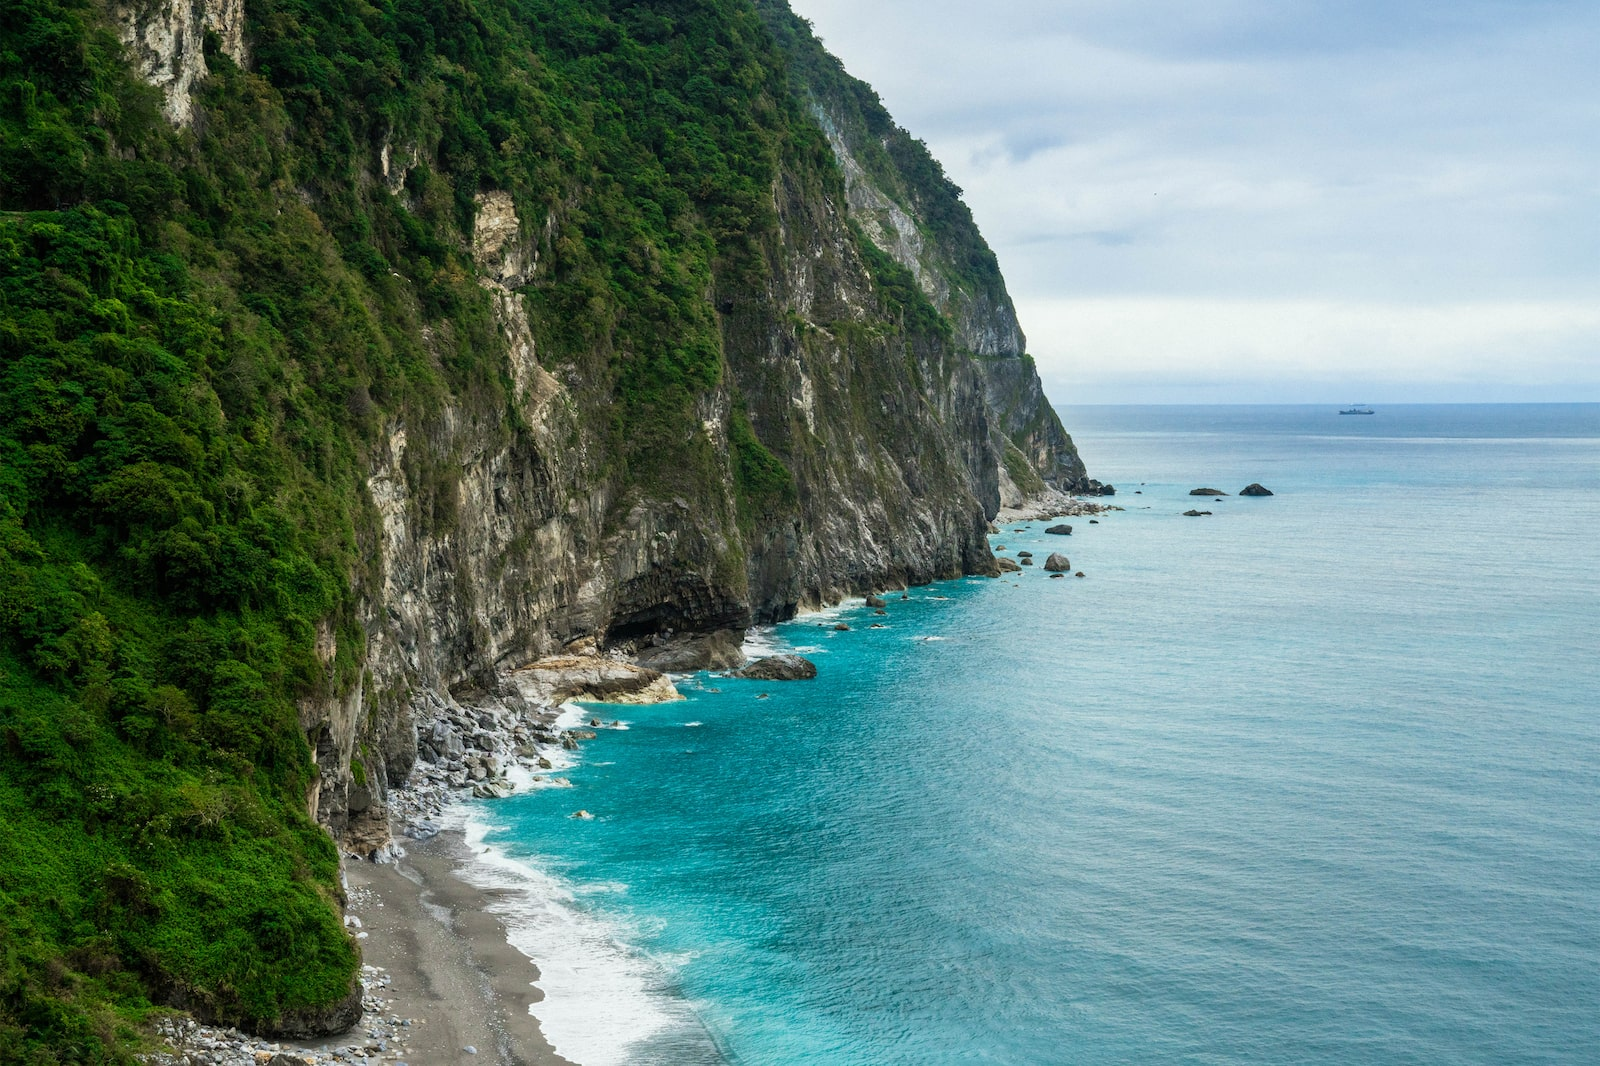 View of a creek by Qingshui Cliff by the sea